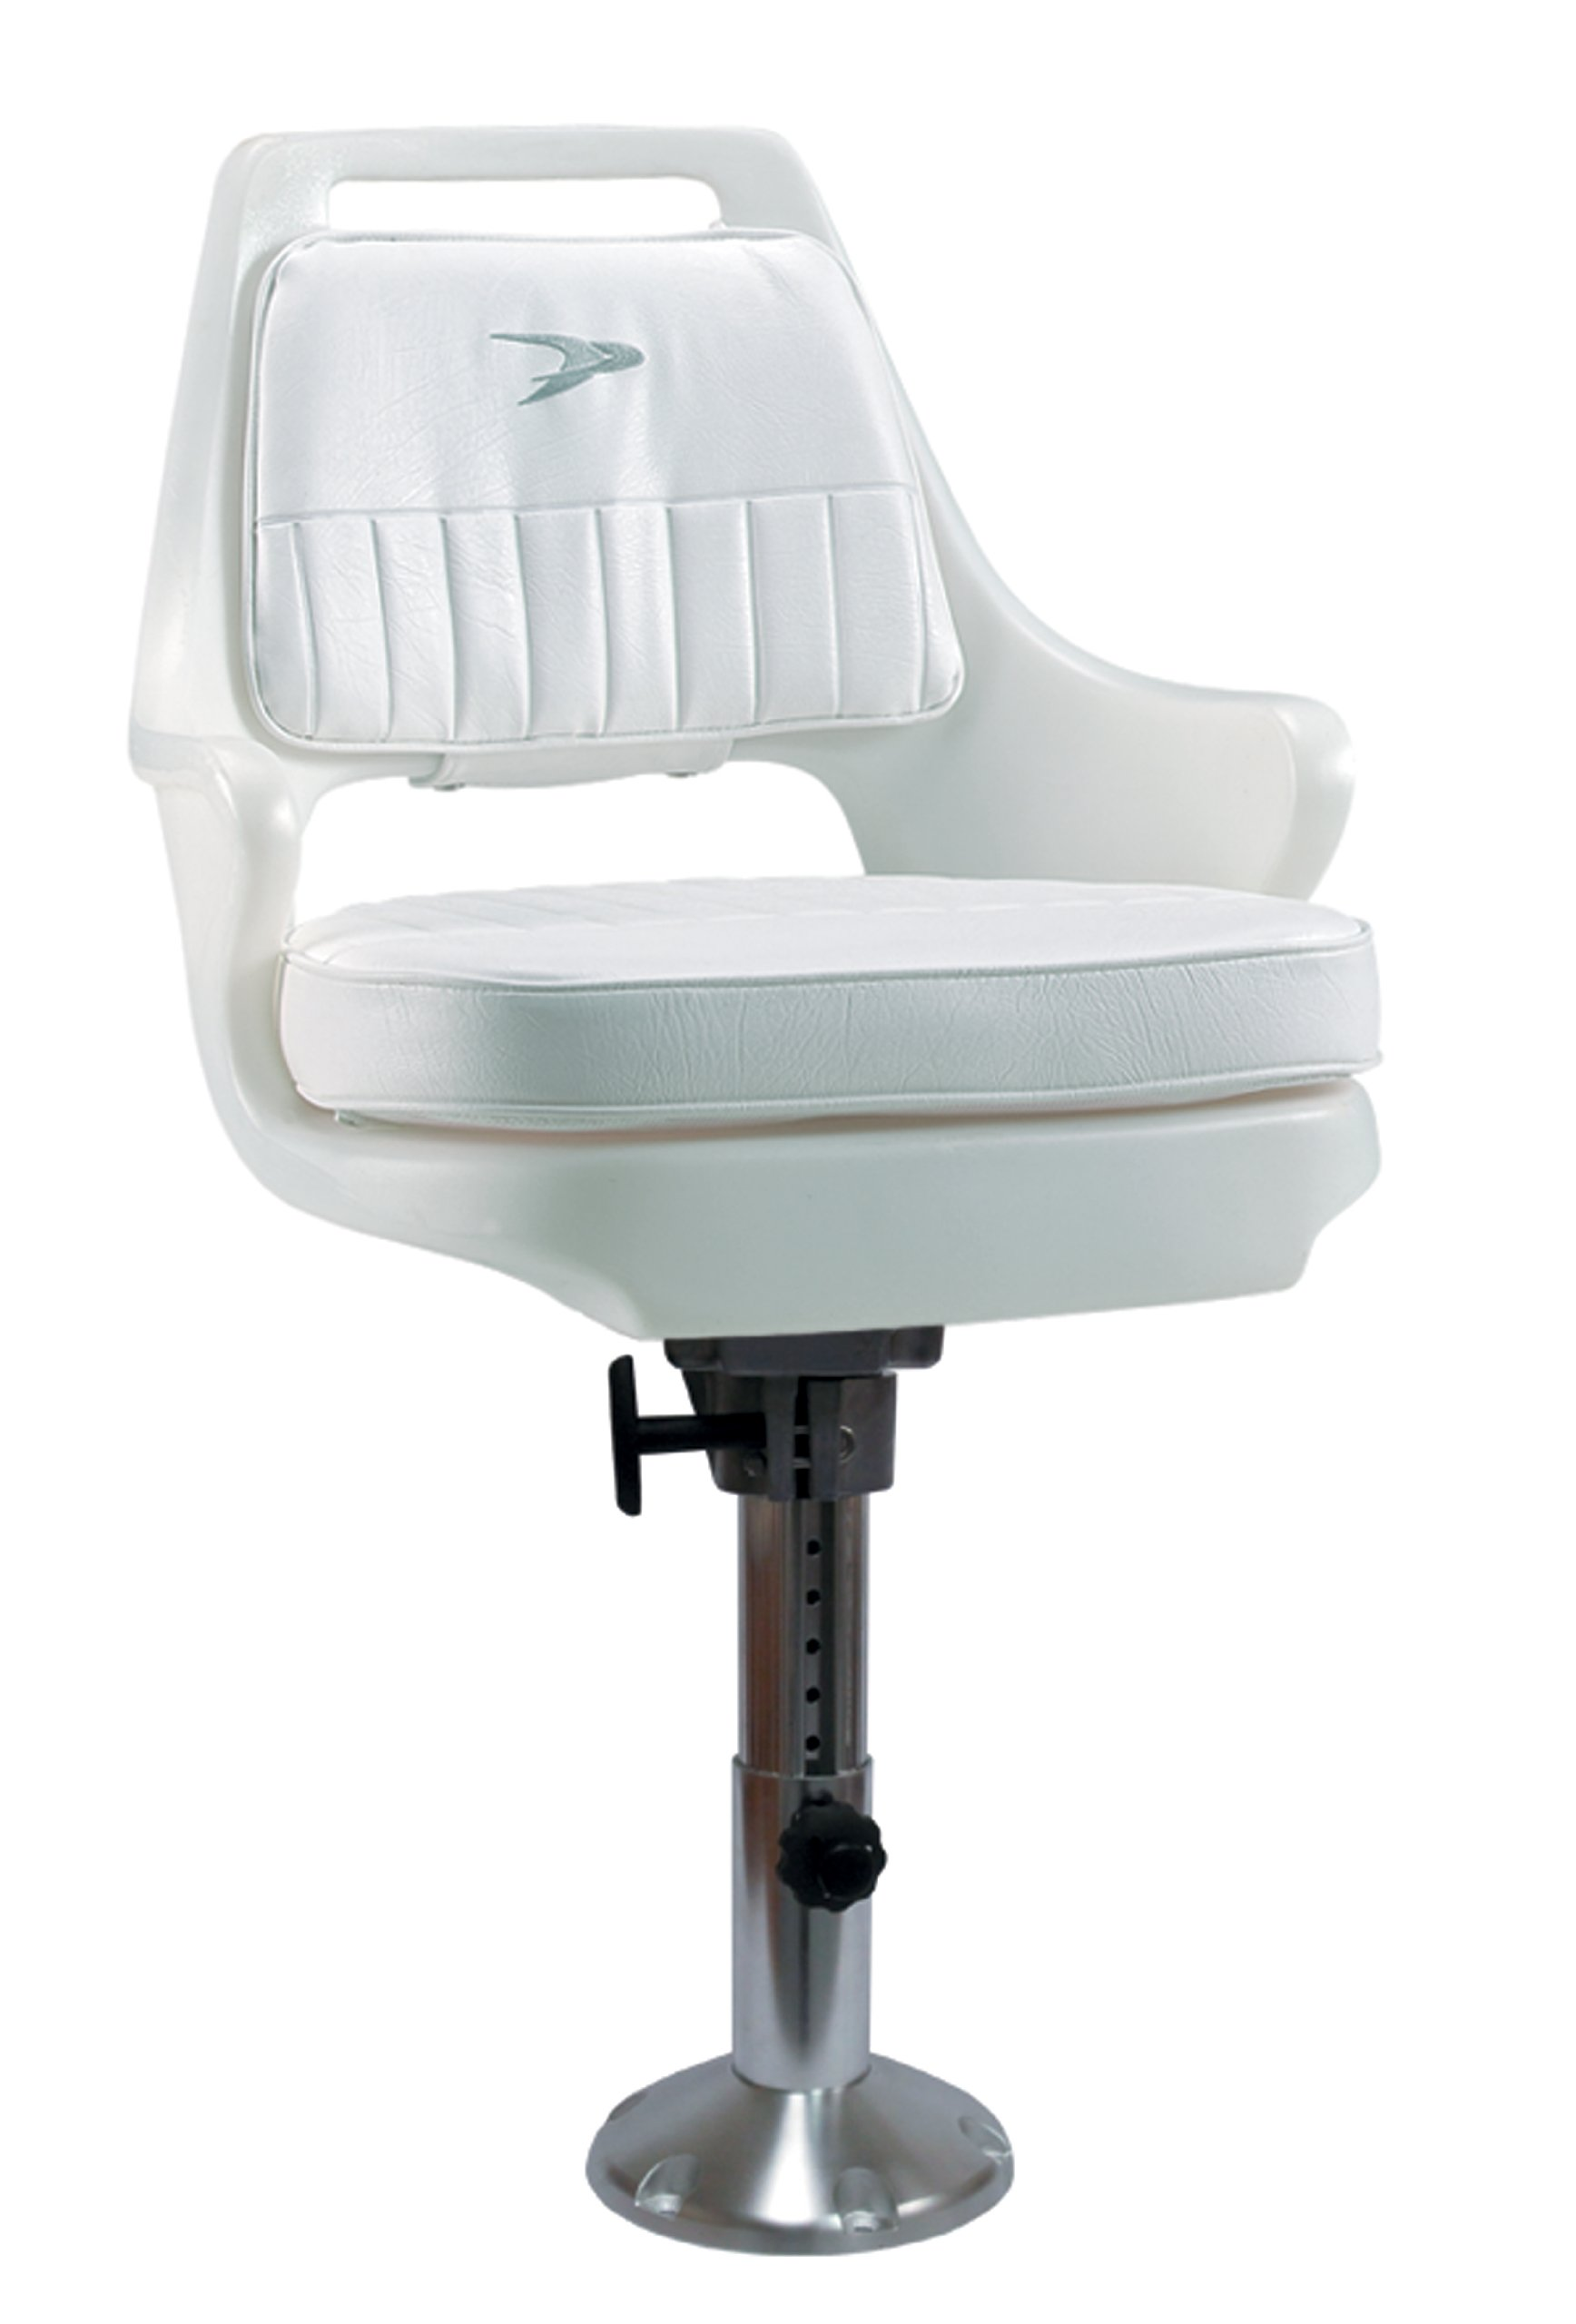 Wise 8WD015-7-710 Standard Pilot Chair with Cushions, 12-18'' Adjustable Height Pedestal and Seat Mount, White